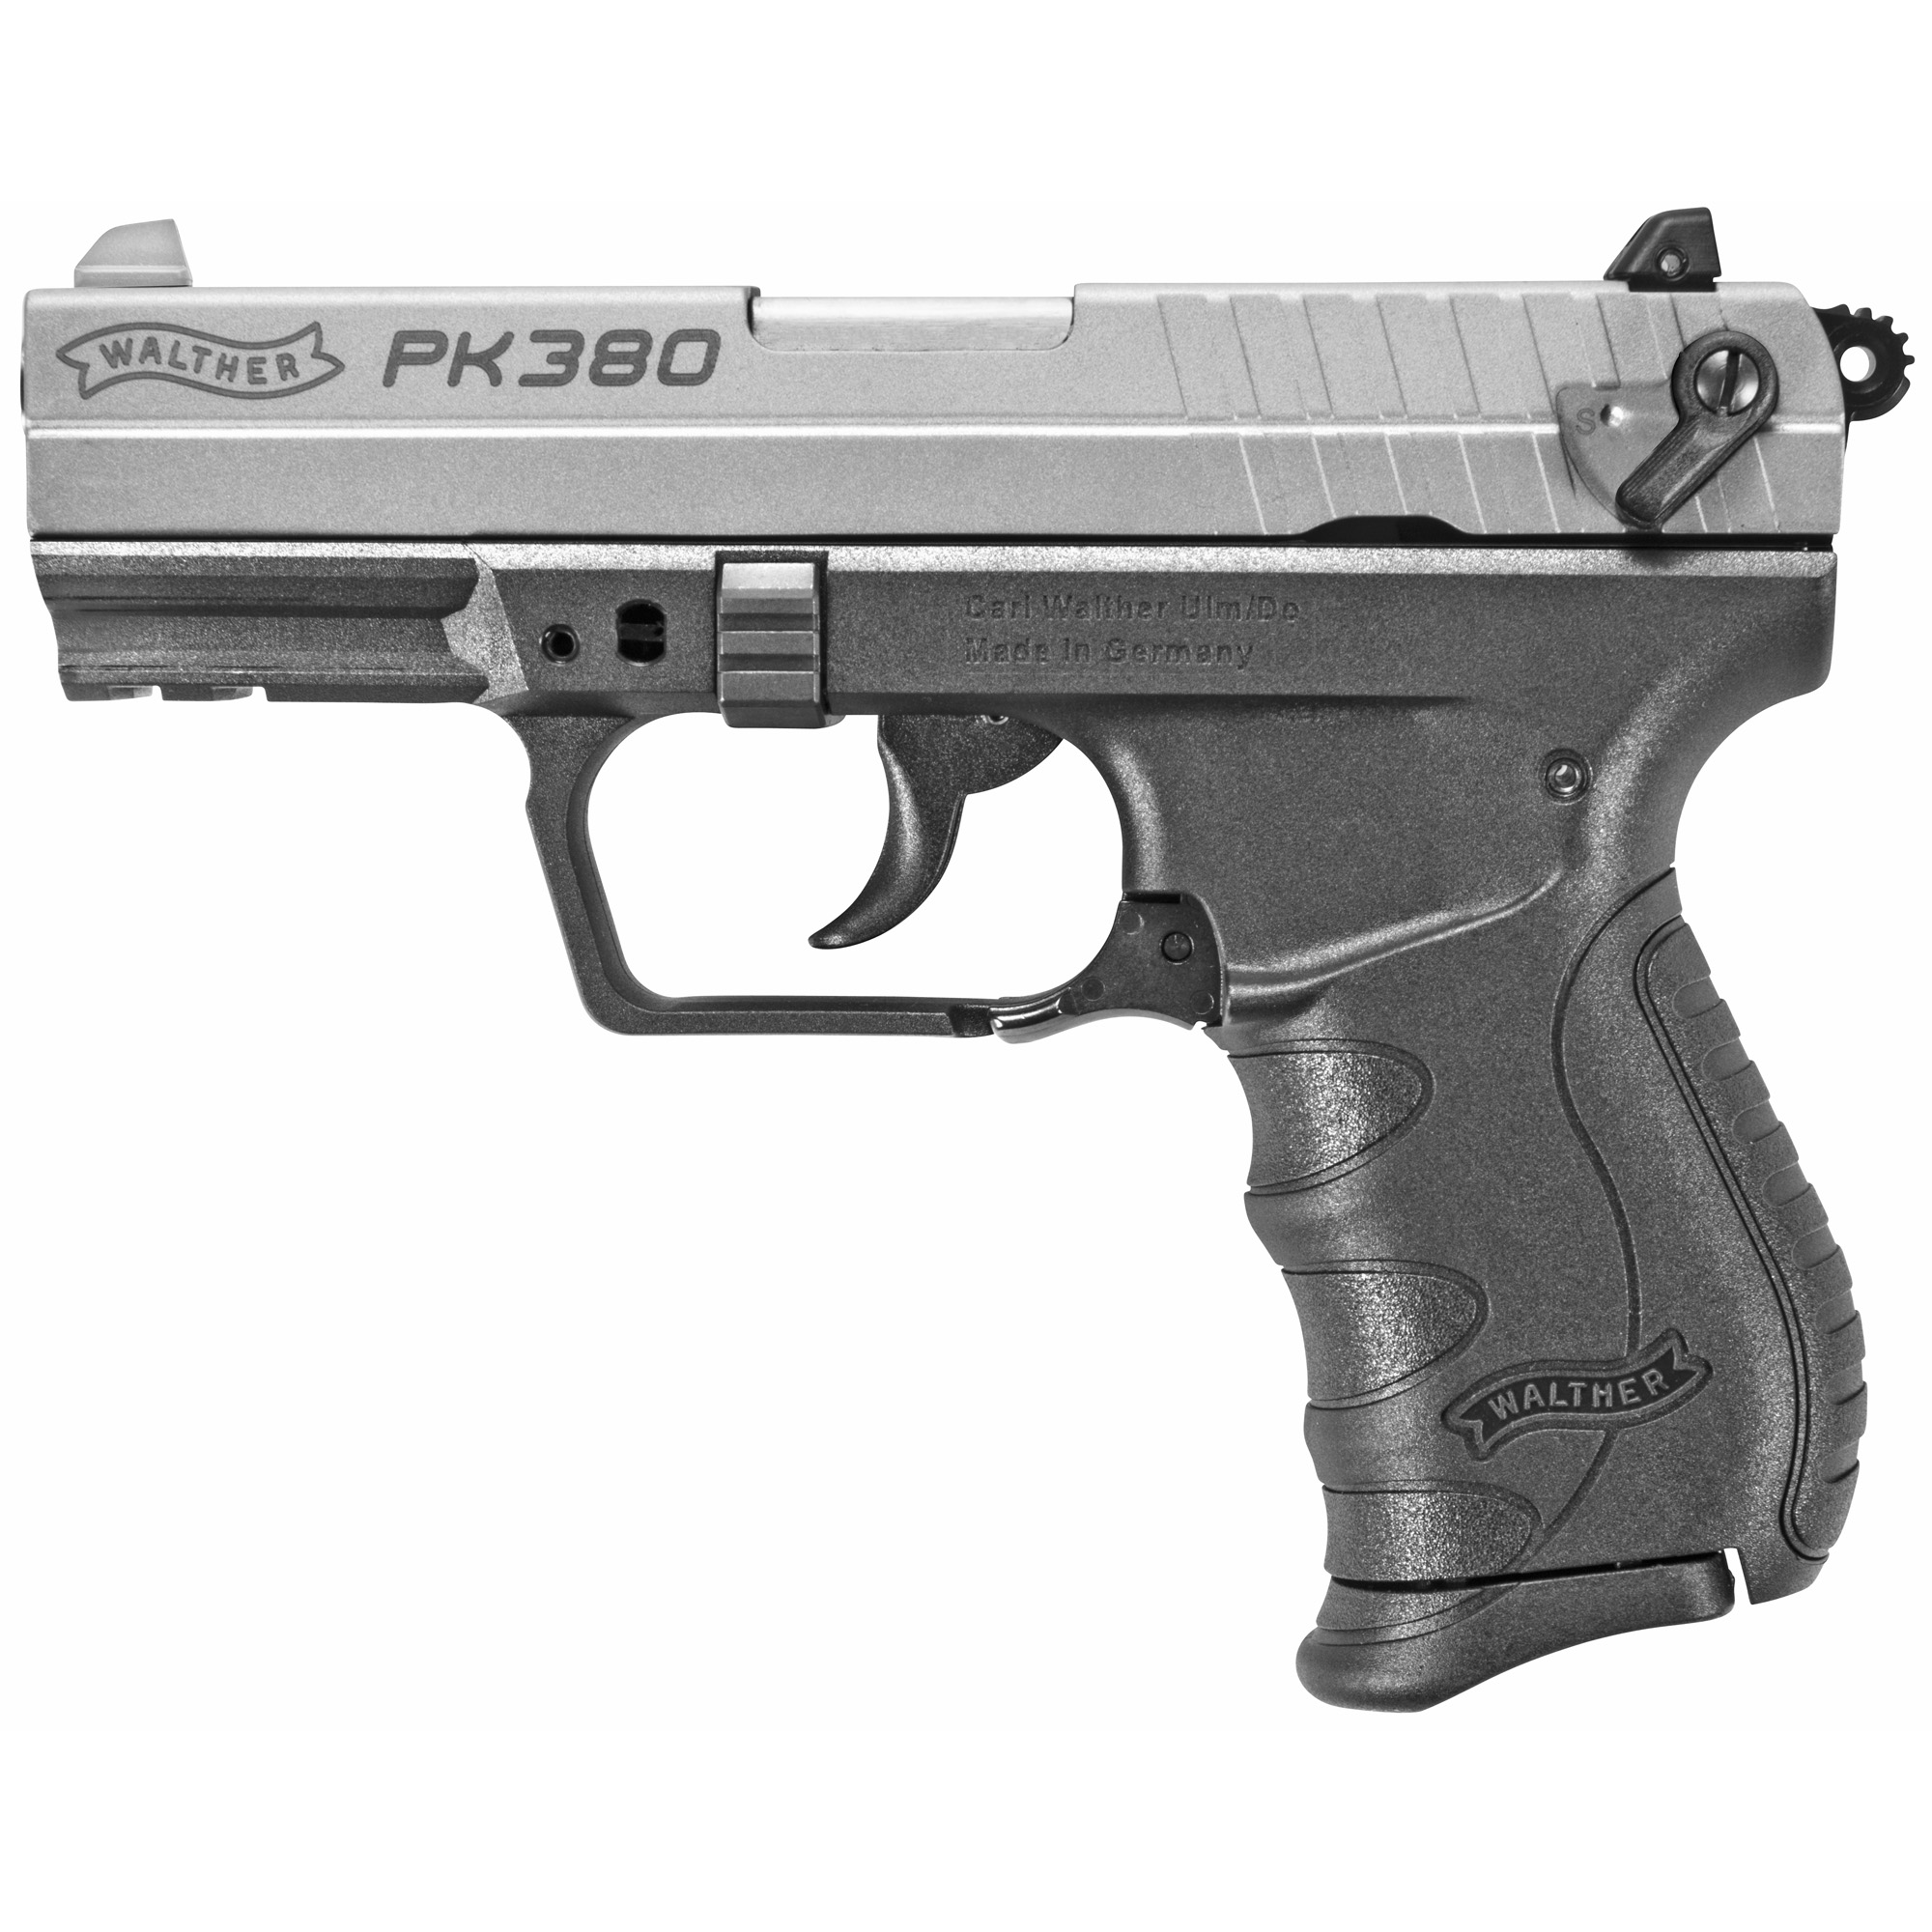 """The PK380 is not just good looking. It is small and good looking. That makes the PK380 excellent for concealed carry. Its small grip is ideal for shooters with small hands. The slide is easy to operate"""" making it a good choice for women. The light weight goes unnoticed in a pocket or purse."""